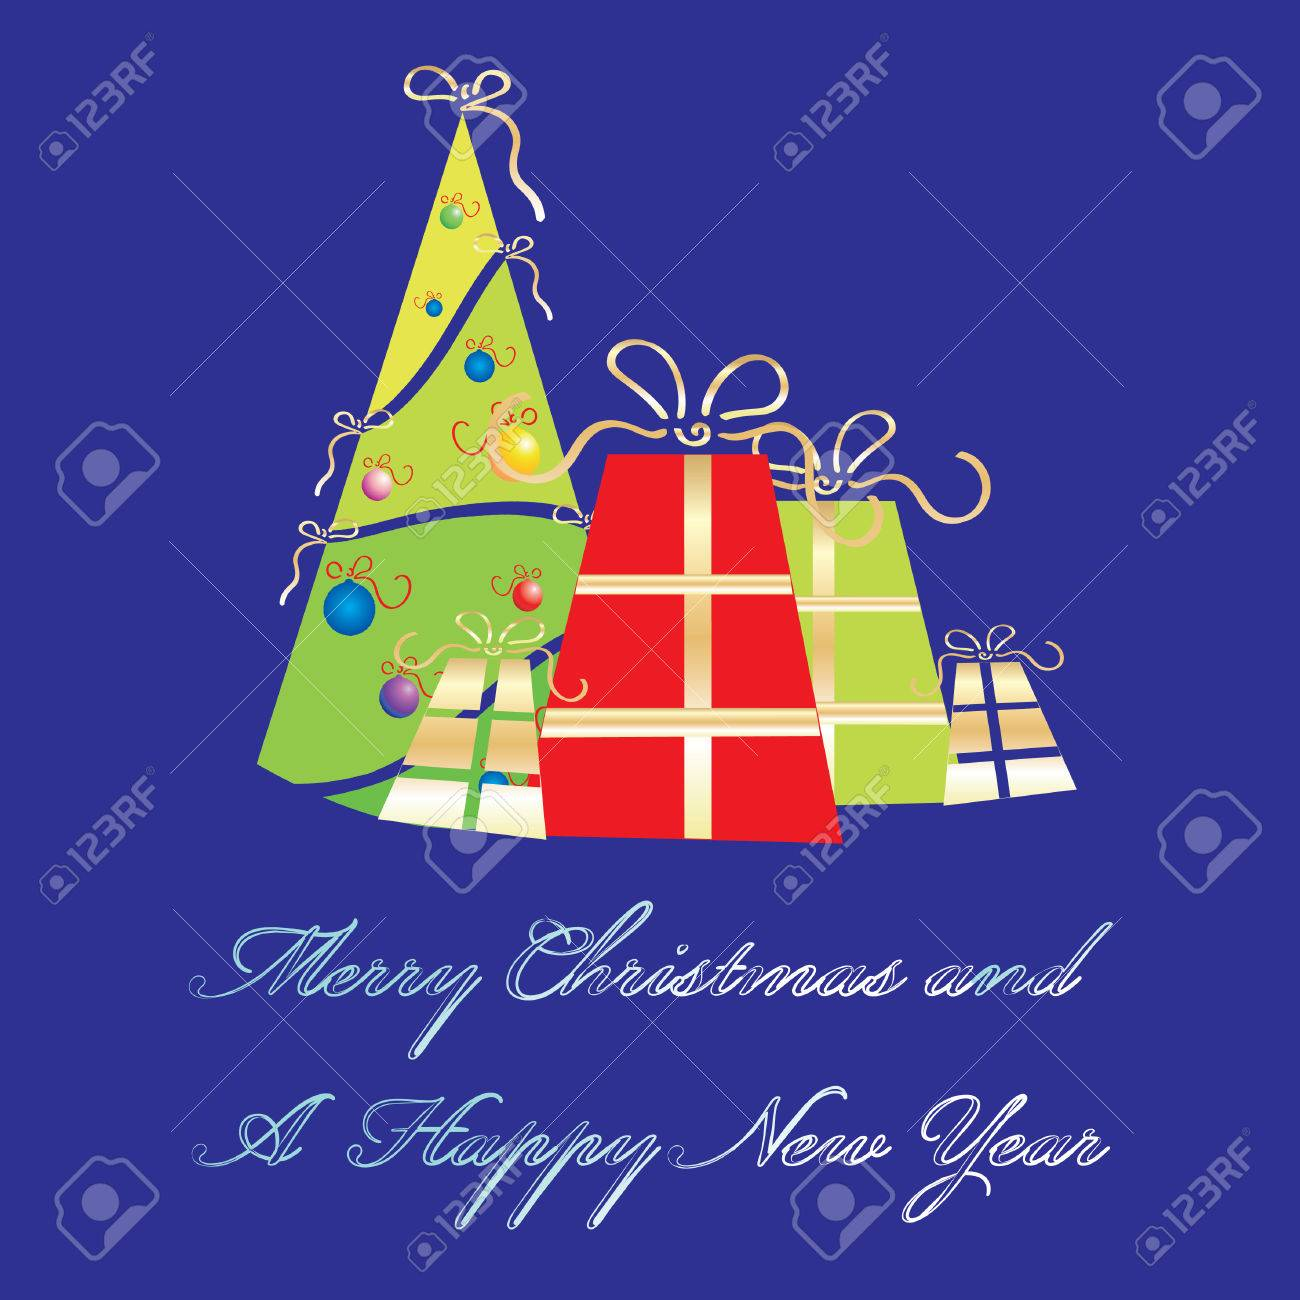 Merry Christmas And A Happy New Year Greeting Card Template – New Year Greeting Card Template